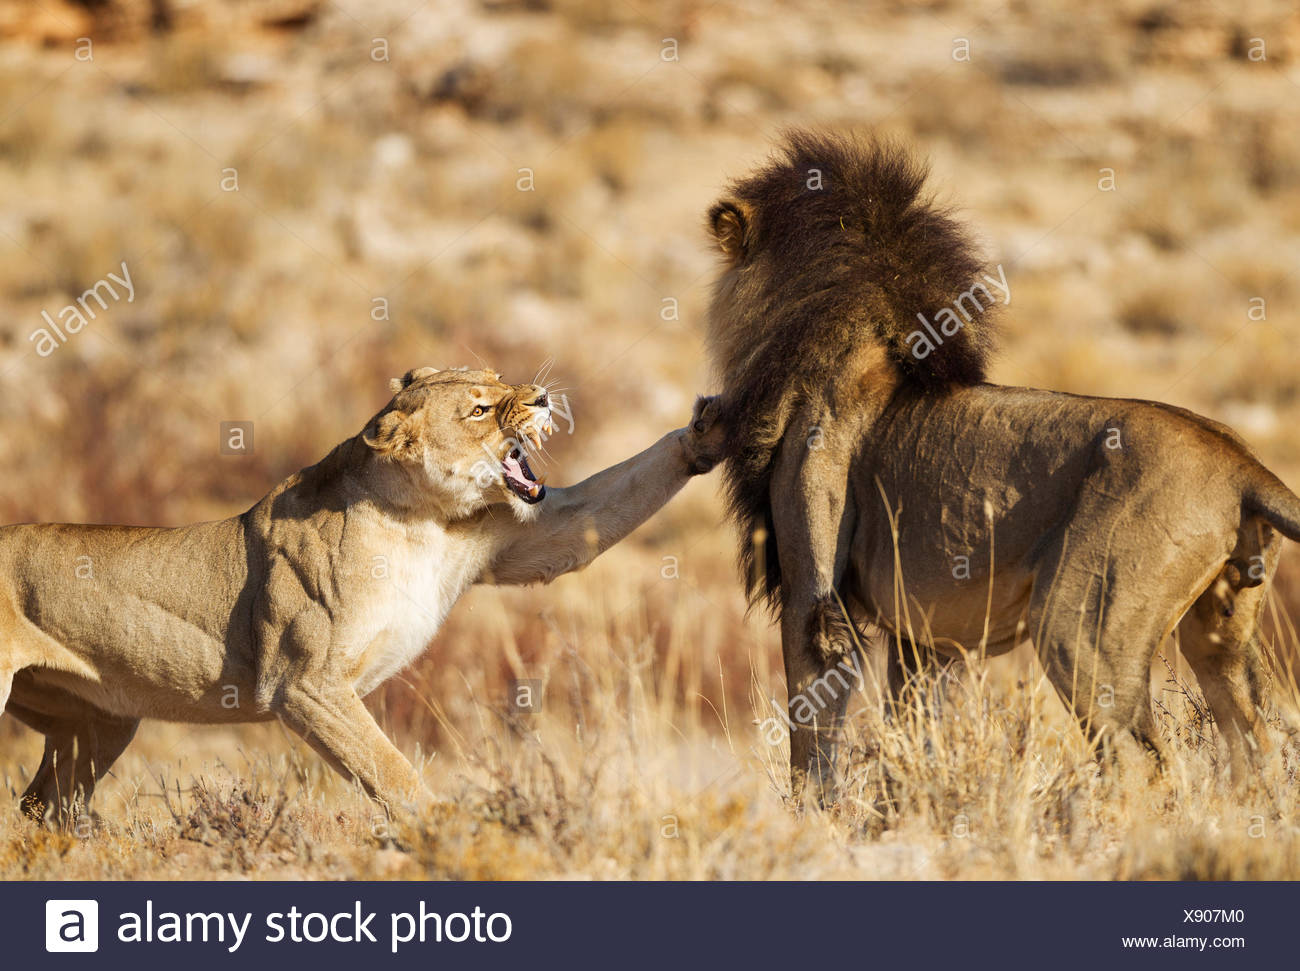 Lion (Panthera leo).  Female in heat and male at their first encounter. The initial aggressive behaviour of the female is typical. Kalahari Desert, Kgalagadi Transfrontier Park, South Africa.. Kalahari Desert, Kgalagadi Transfrontier Park, South Africa. - Stock Image